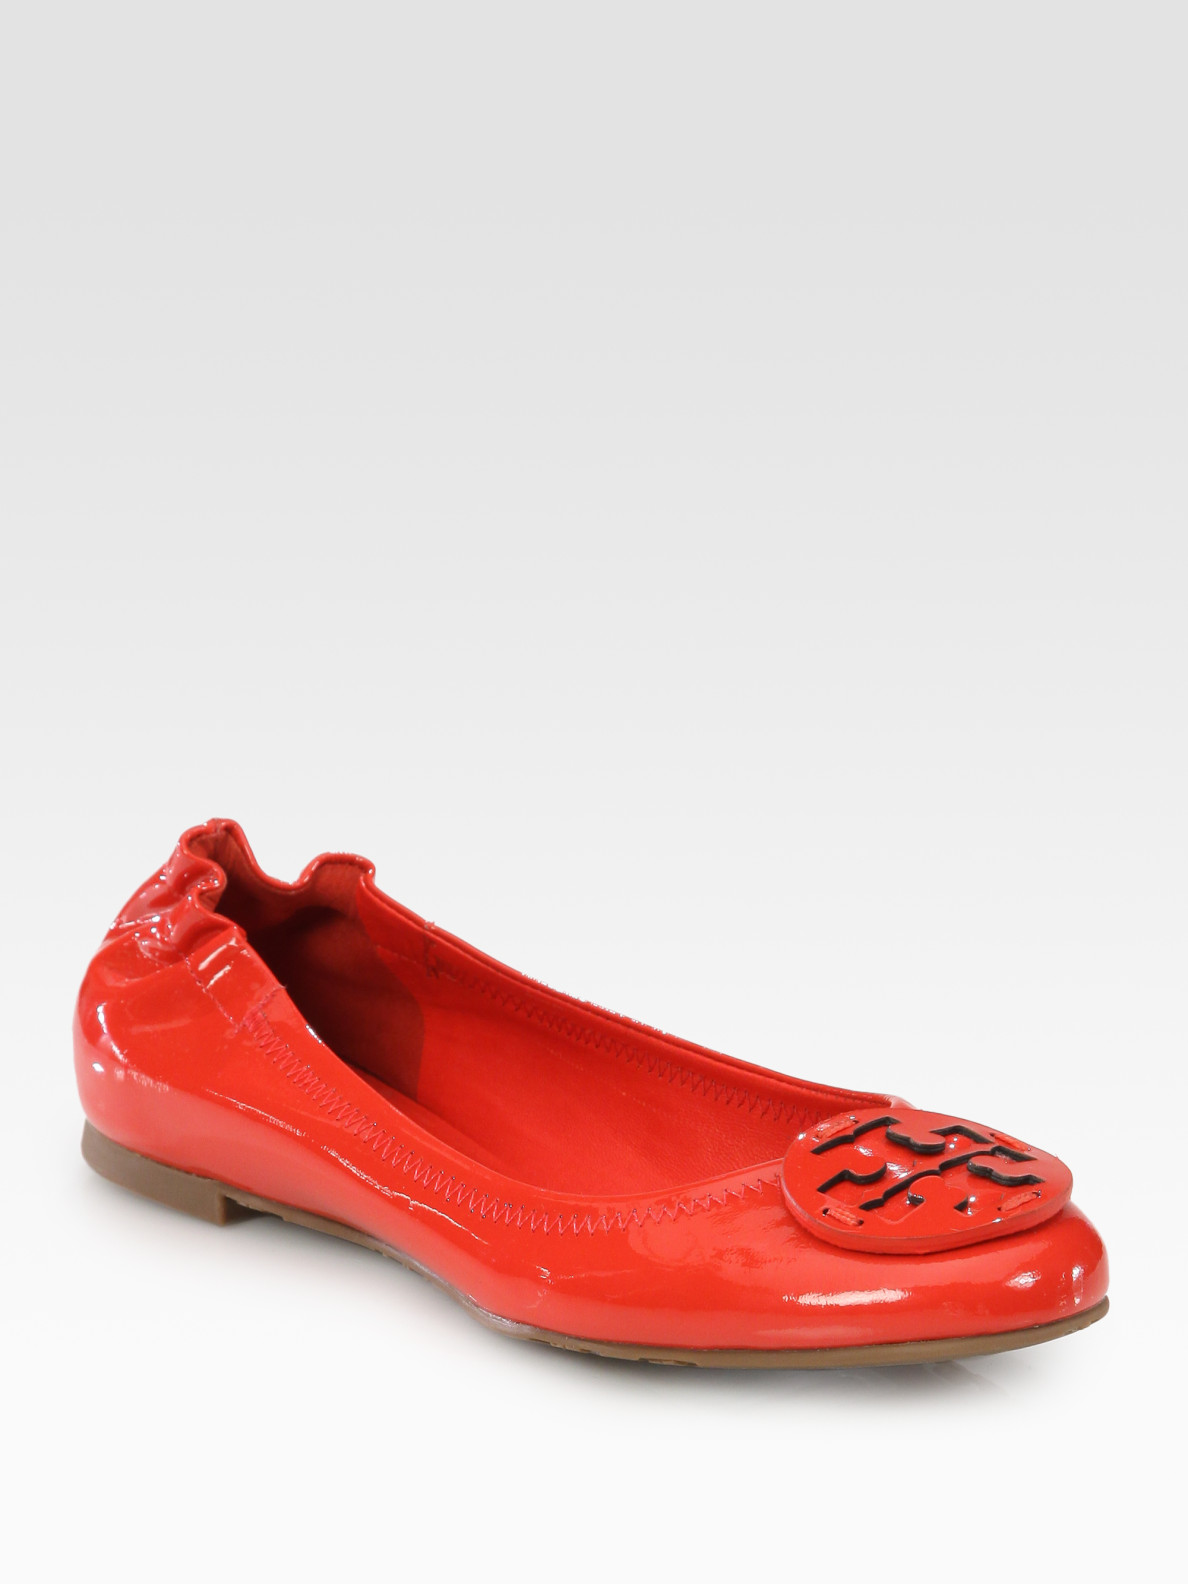 Lyst Tory Burch Reva Patent Leather Logo Ballet Flats In Red